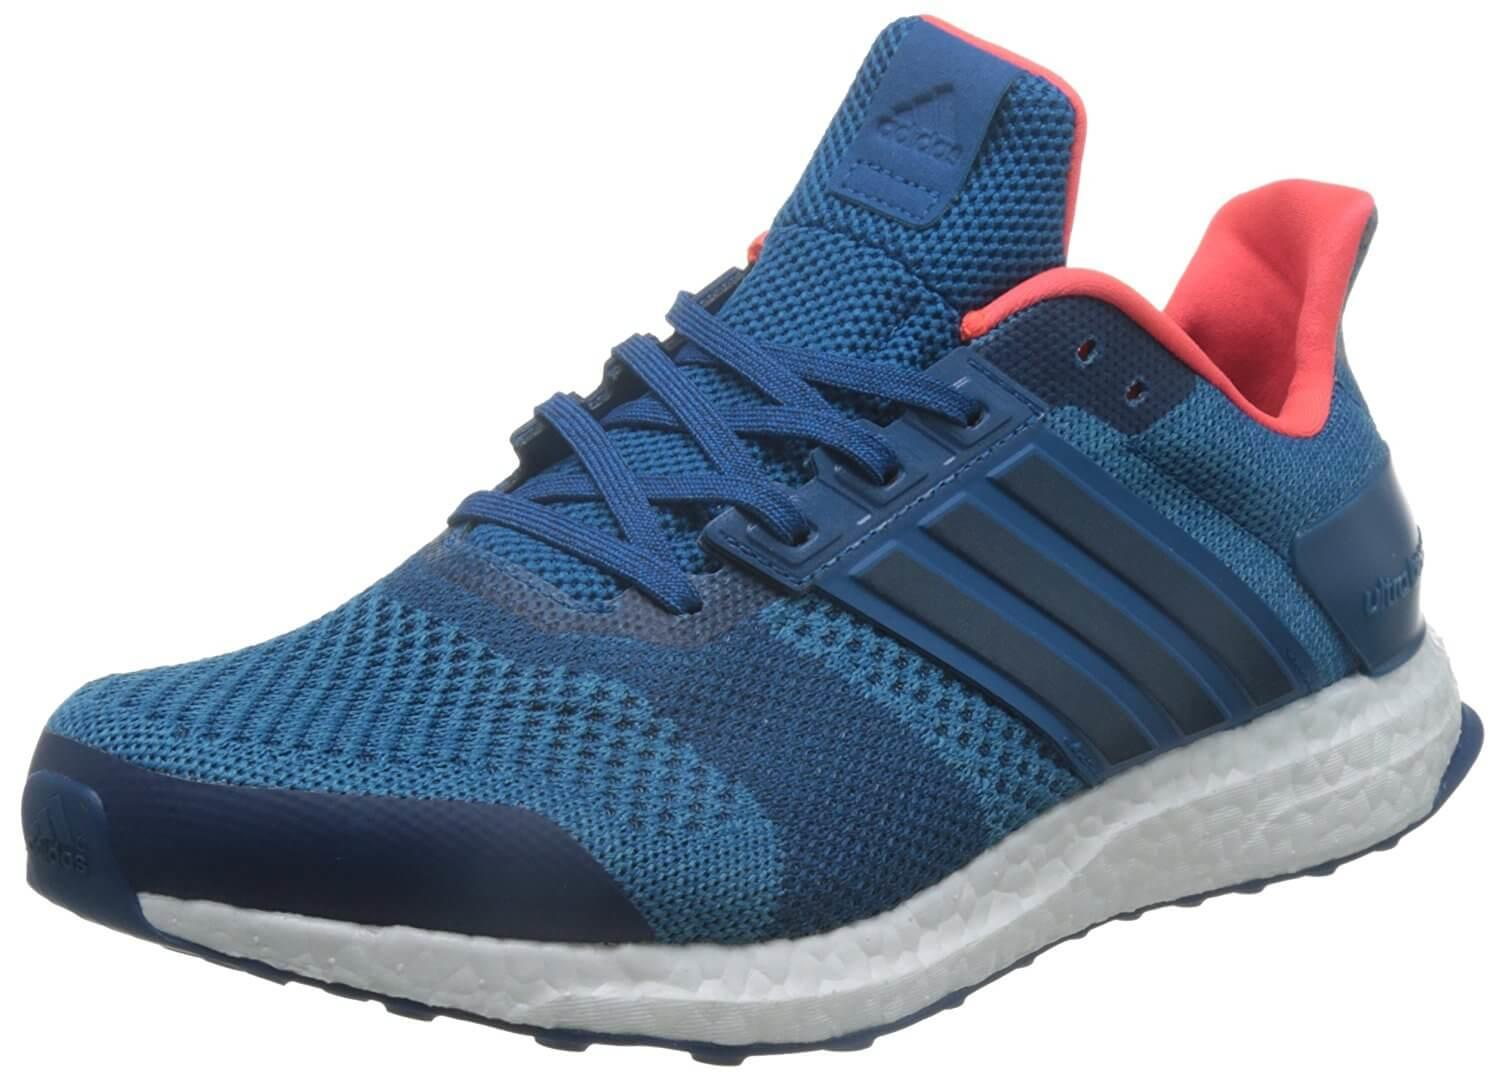 GO RUN! Men's adidas Supernova STM Jacket Running Shoes